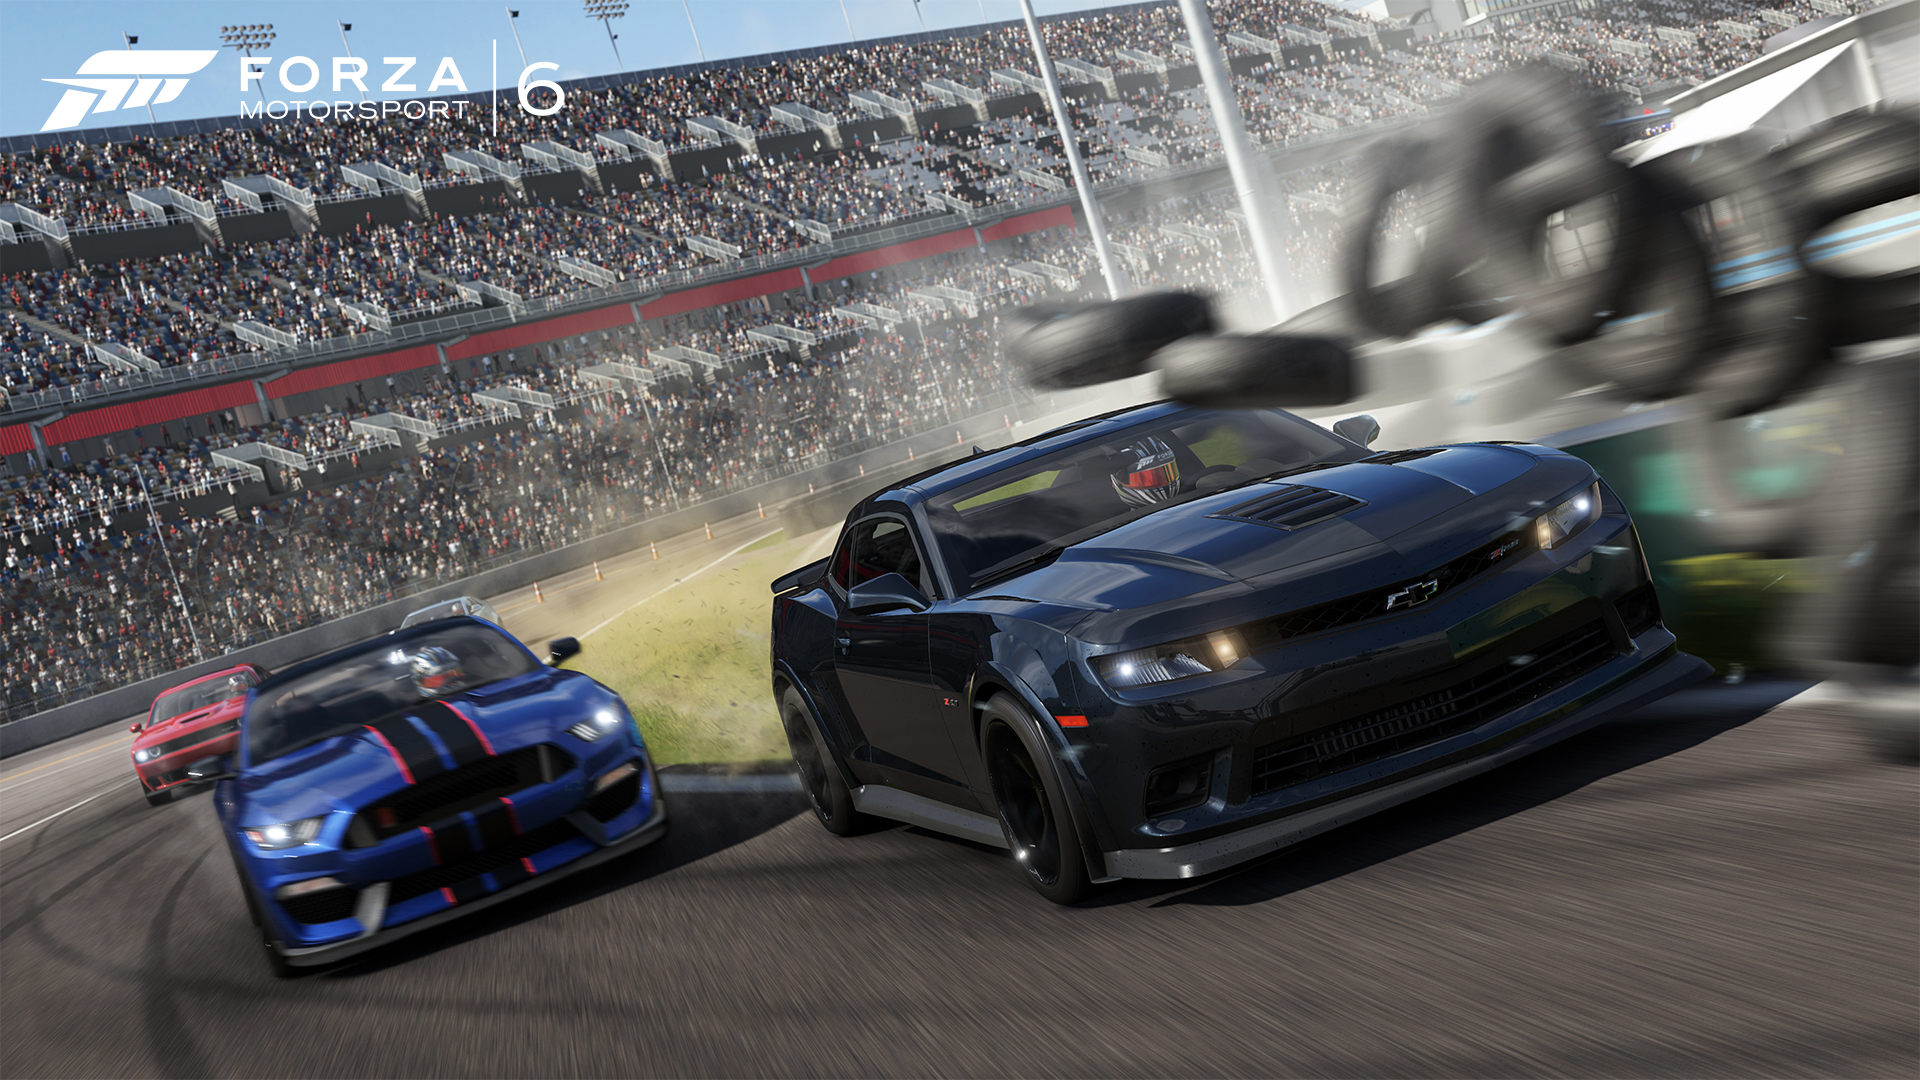 Forza motorsport 6 receives two additional halo 5 ford mustang cars